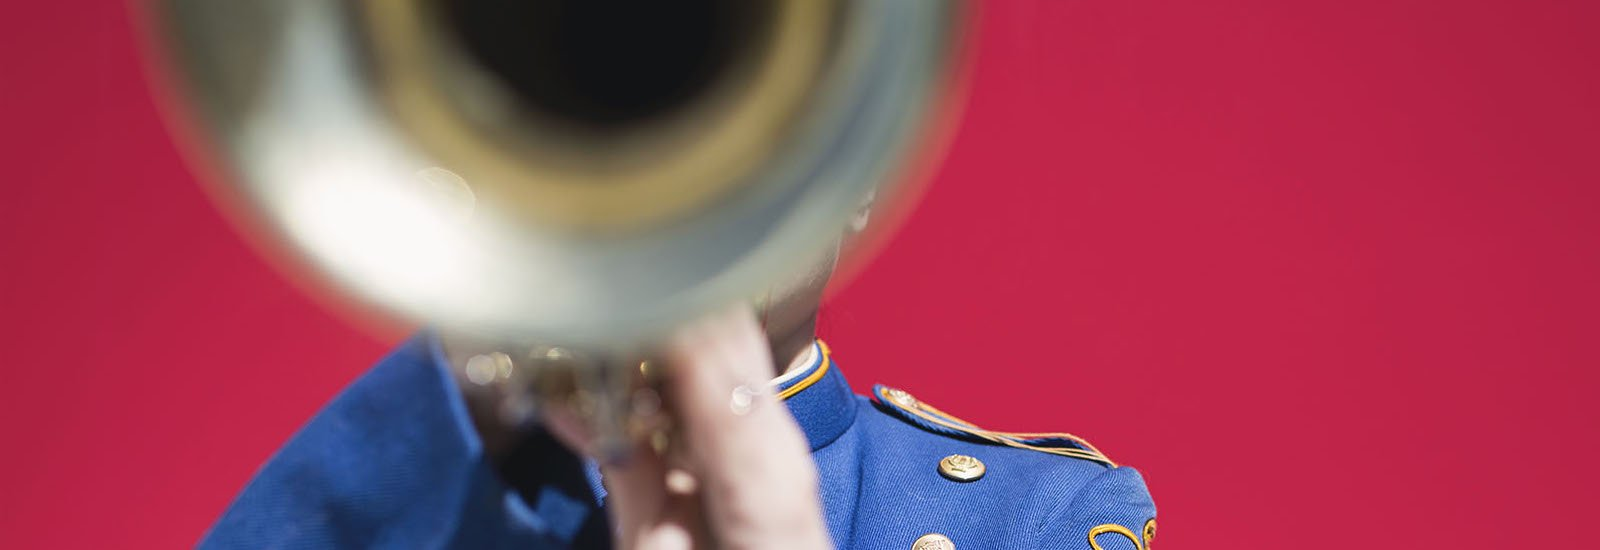 stock image of a trumpet player against a red background